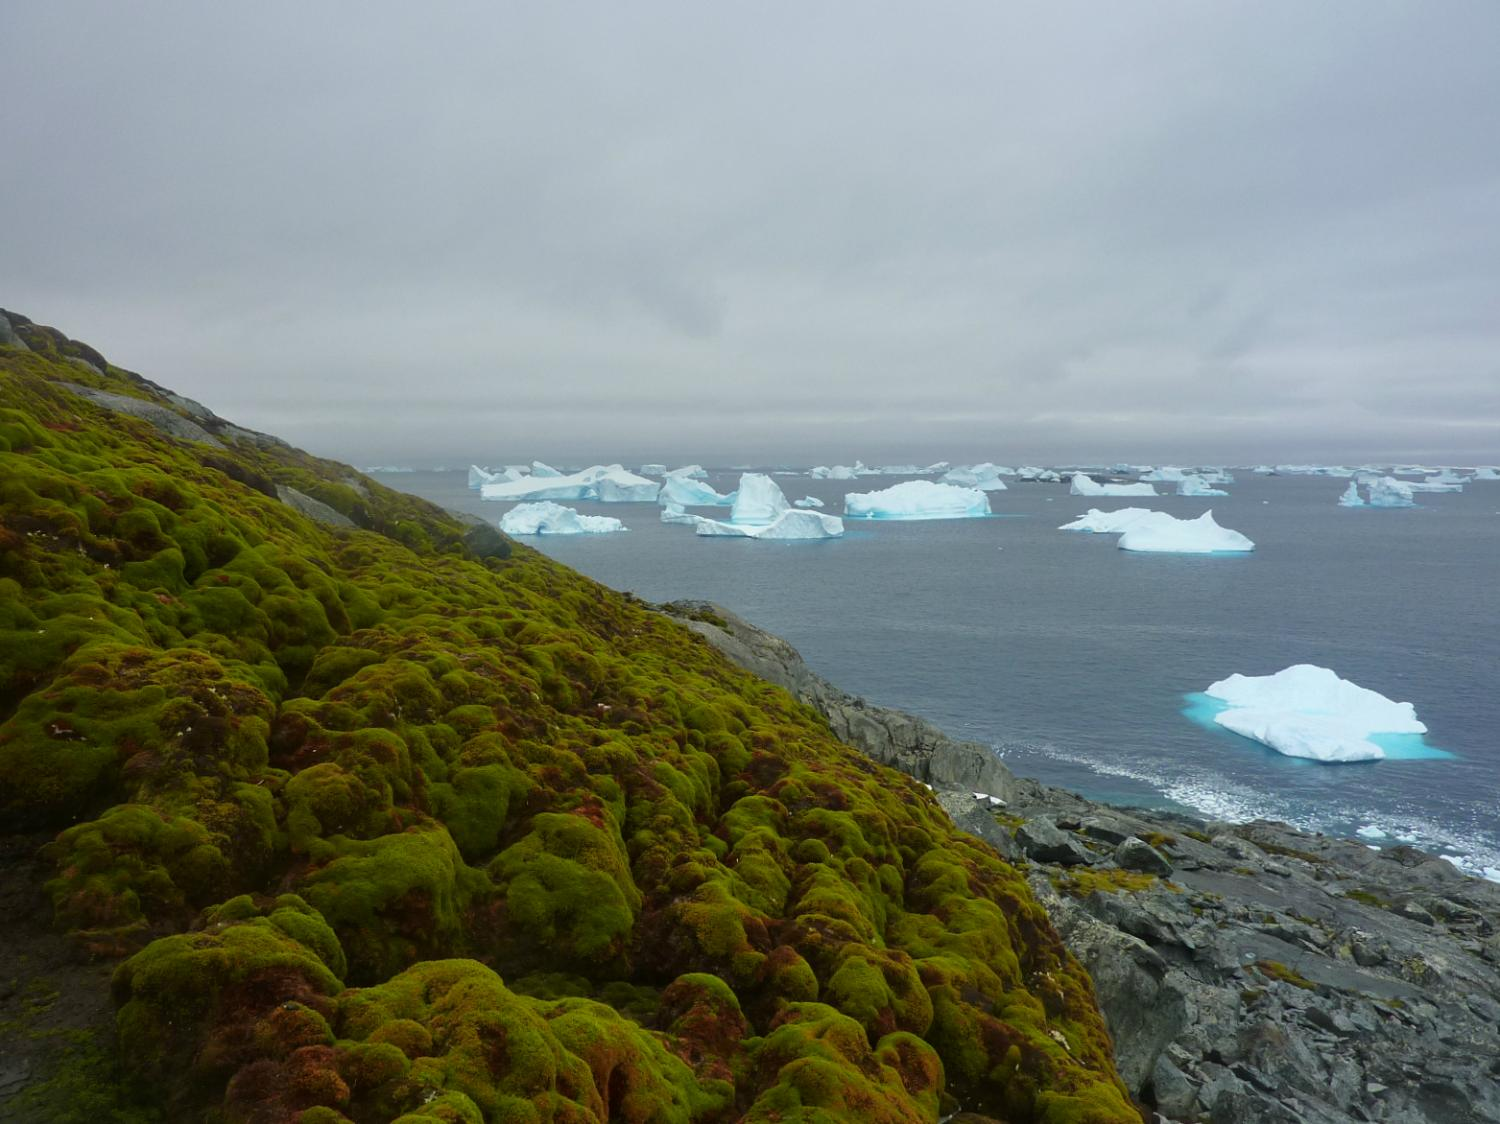 Antarctica 'is turning green with new plants because of global warming'